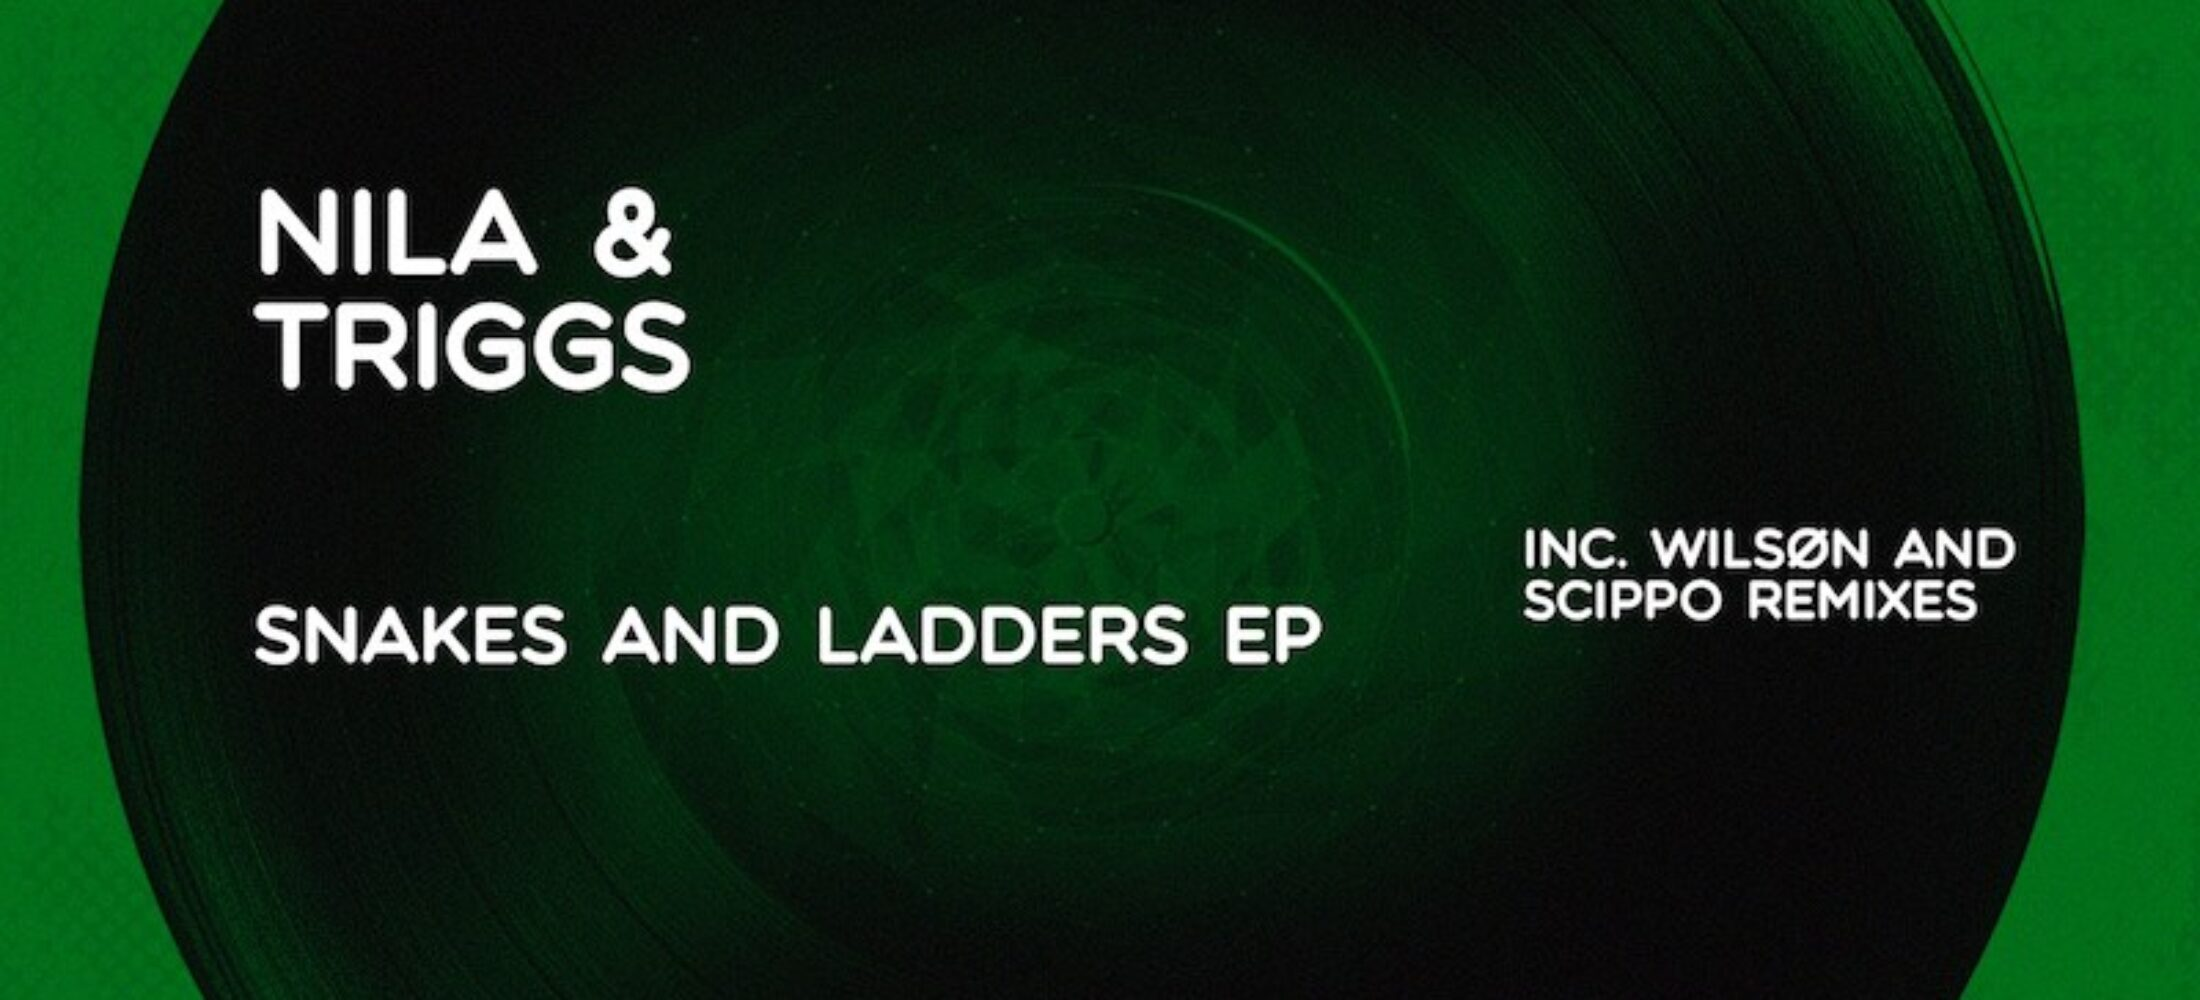 New Release - Nila & Triggs - Snakes & Ladders EP